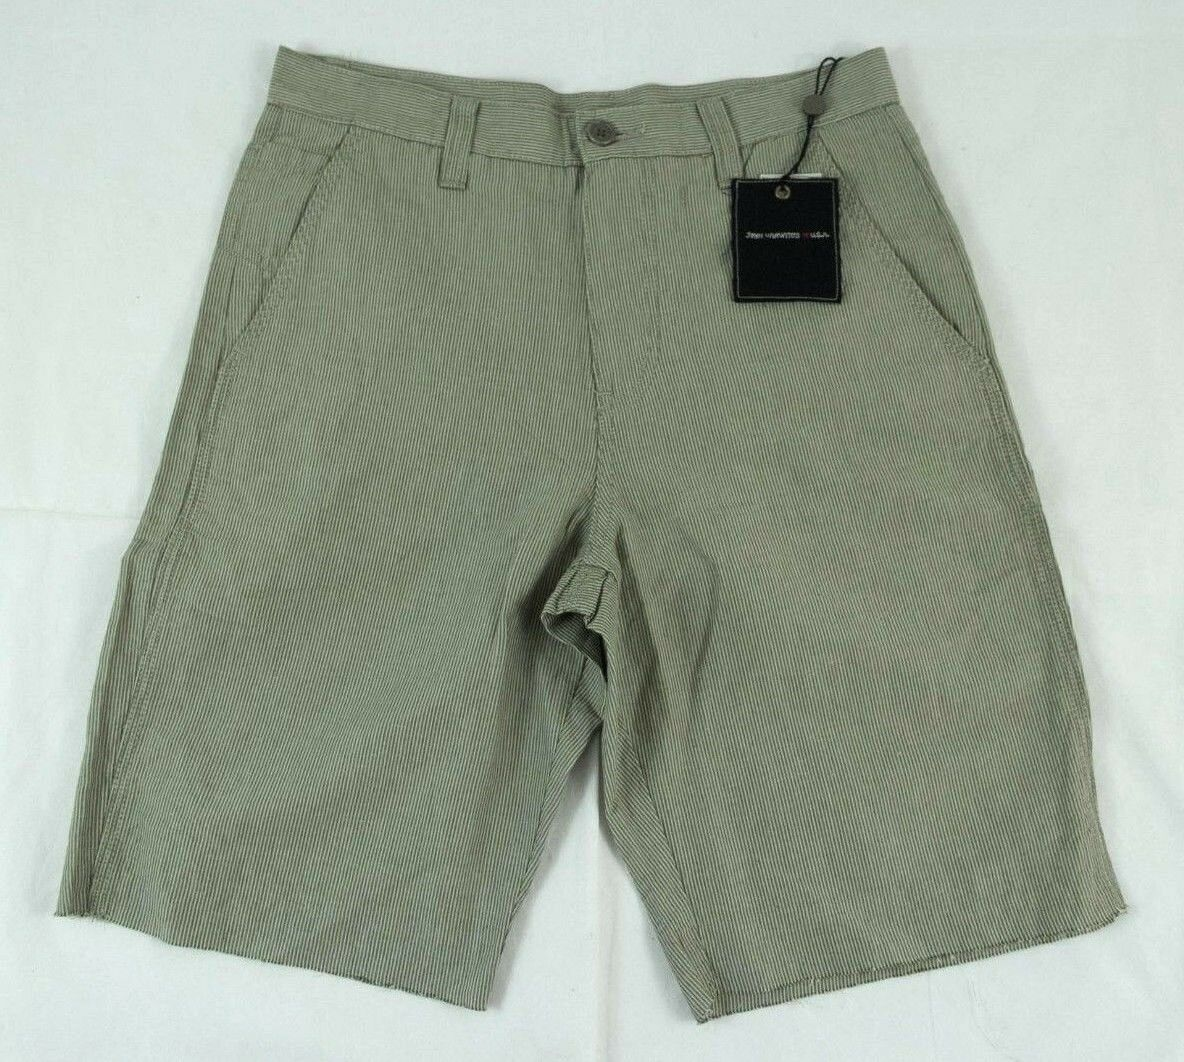 John Varvatos Green Beige Striped Casual Shorts Sz. 30  BNWT 100% Authentic